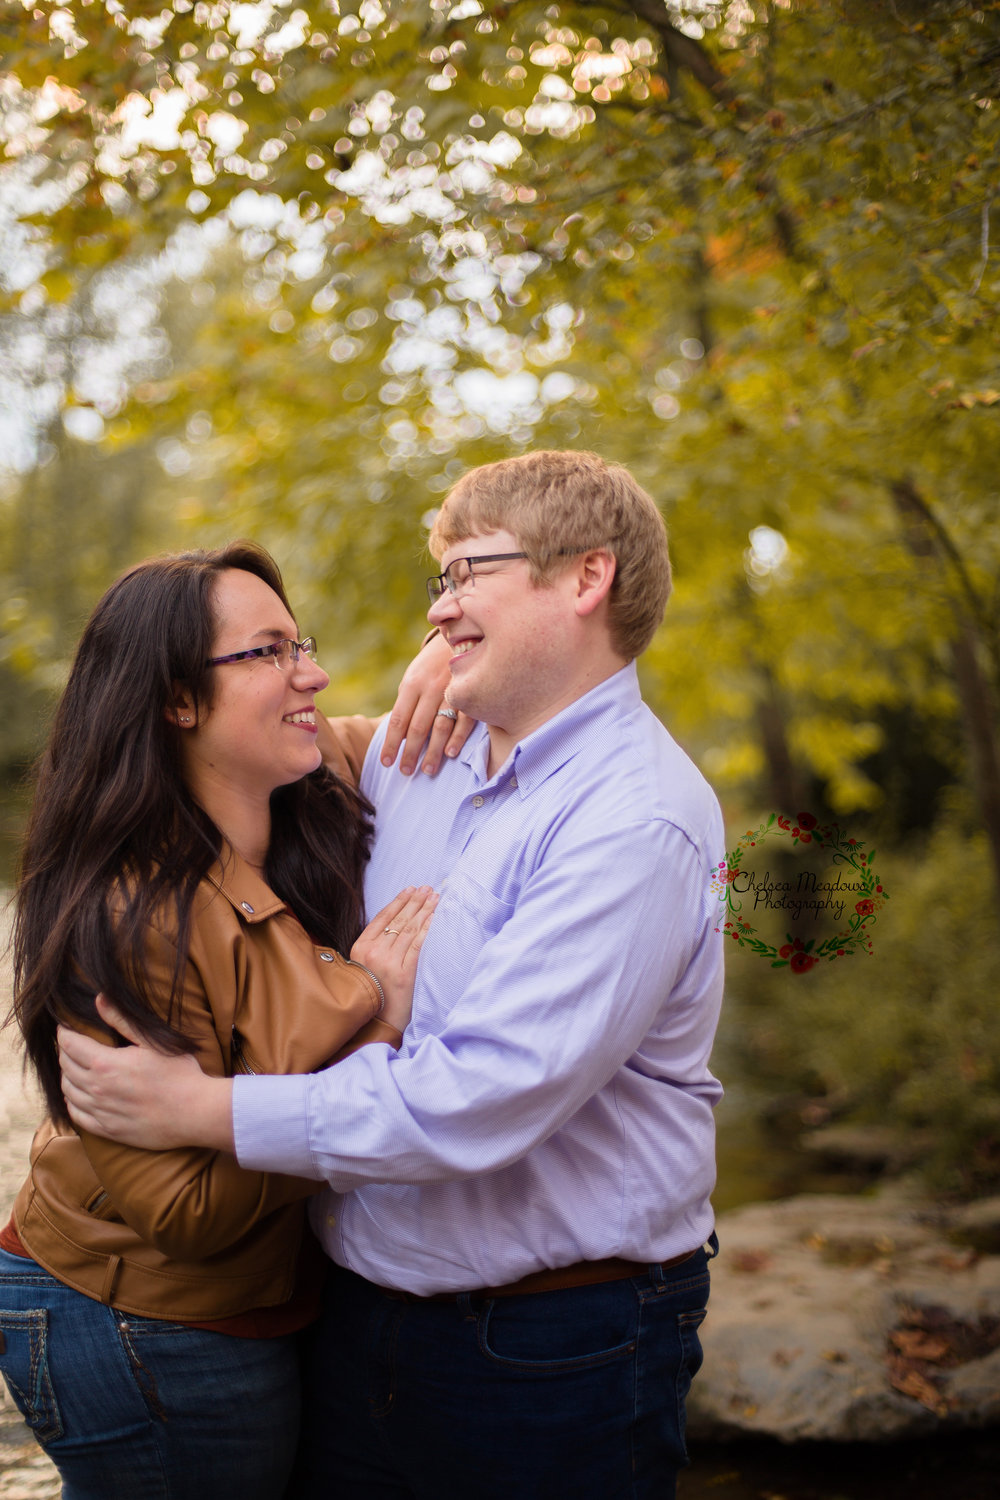 Ashley & Alex Engagement Session - Nashville Couple Photographer - Chelsea Meadows Photography (26).jpg